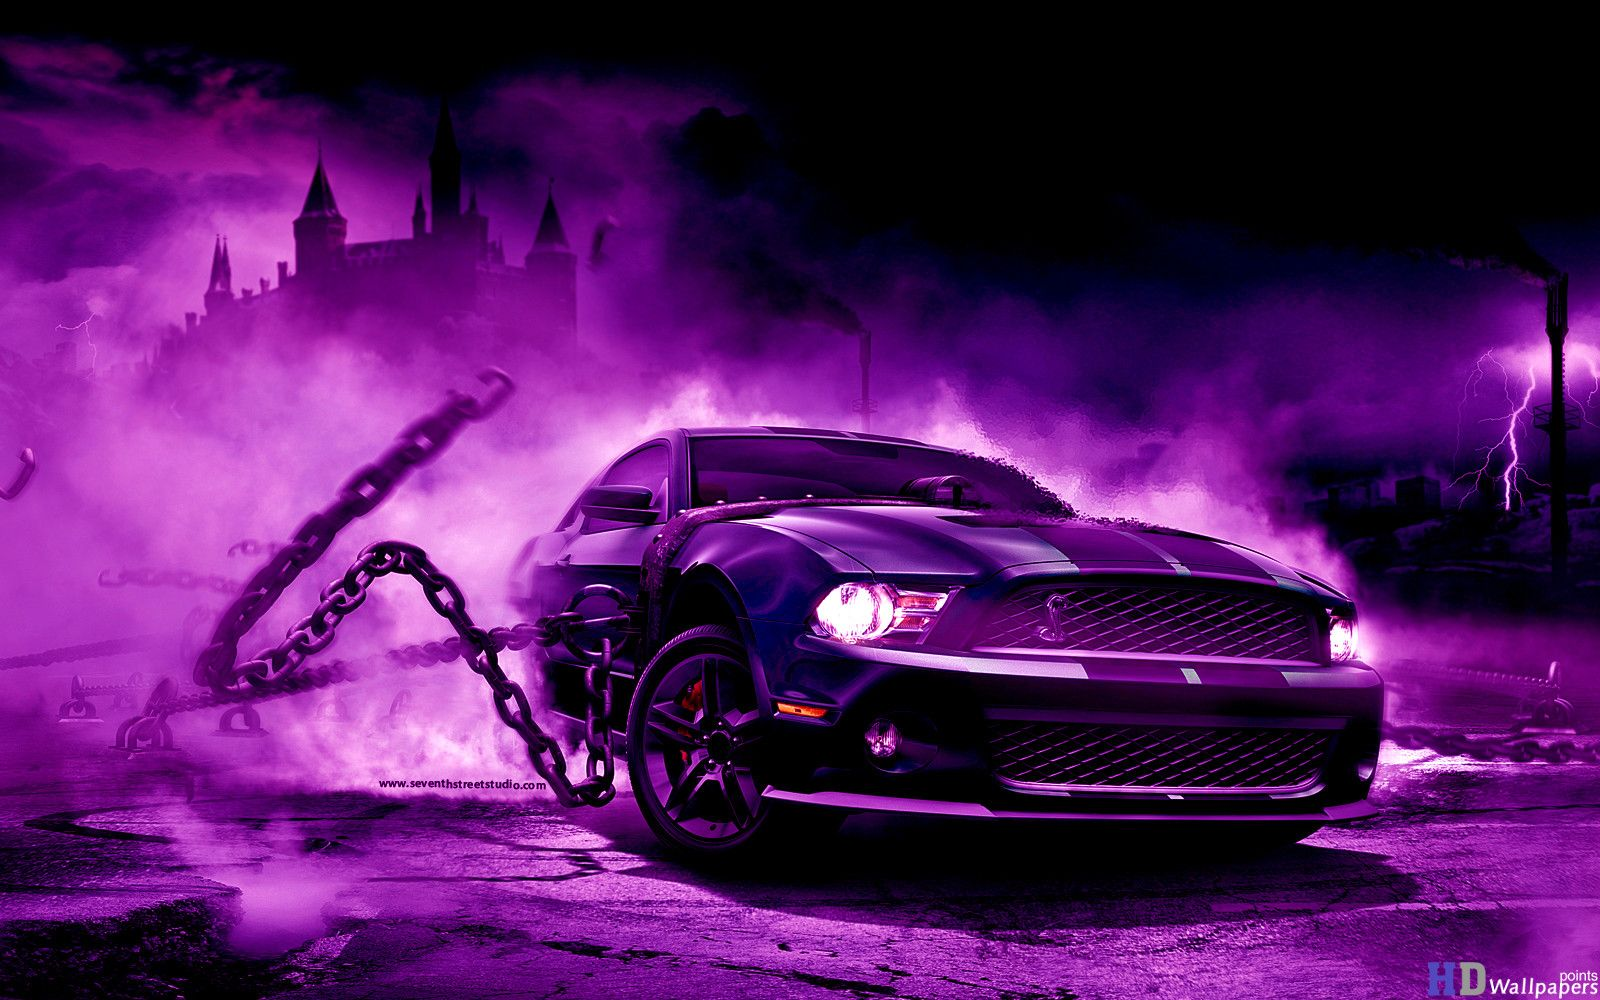 Cool Car 3d Wallpapers HD Background Desktop #14500 Wallpaper ... | vikas in 2019 | Car ...